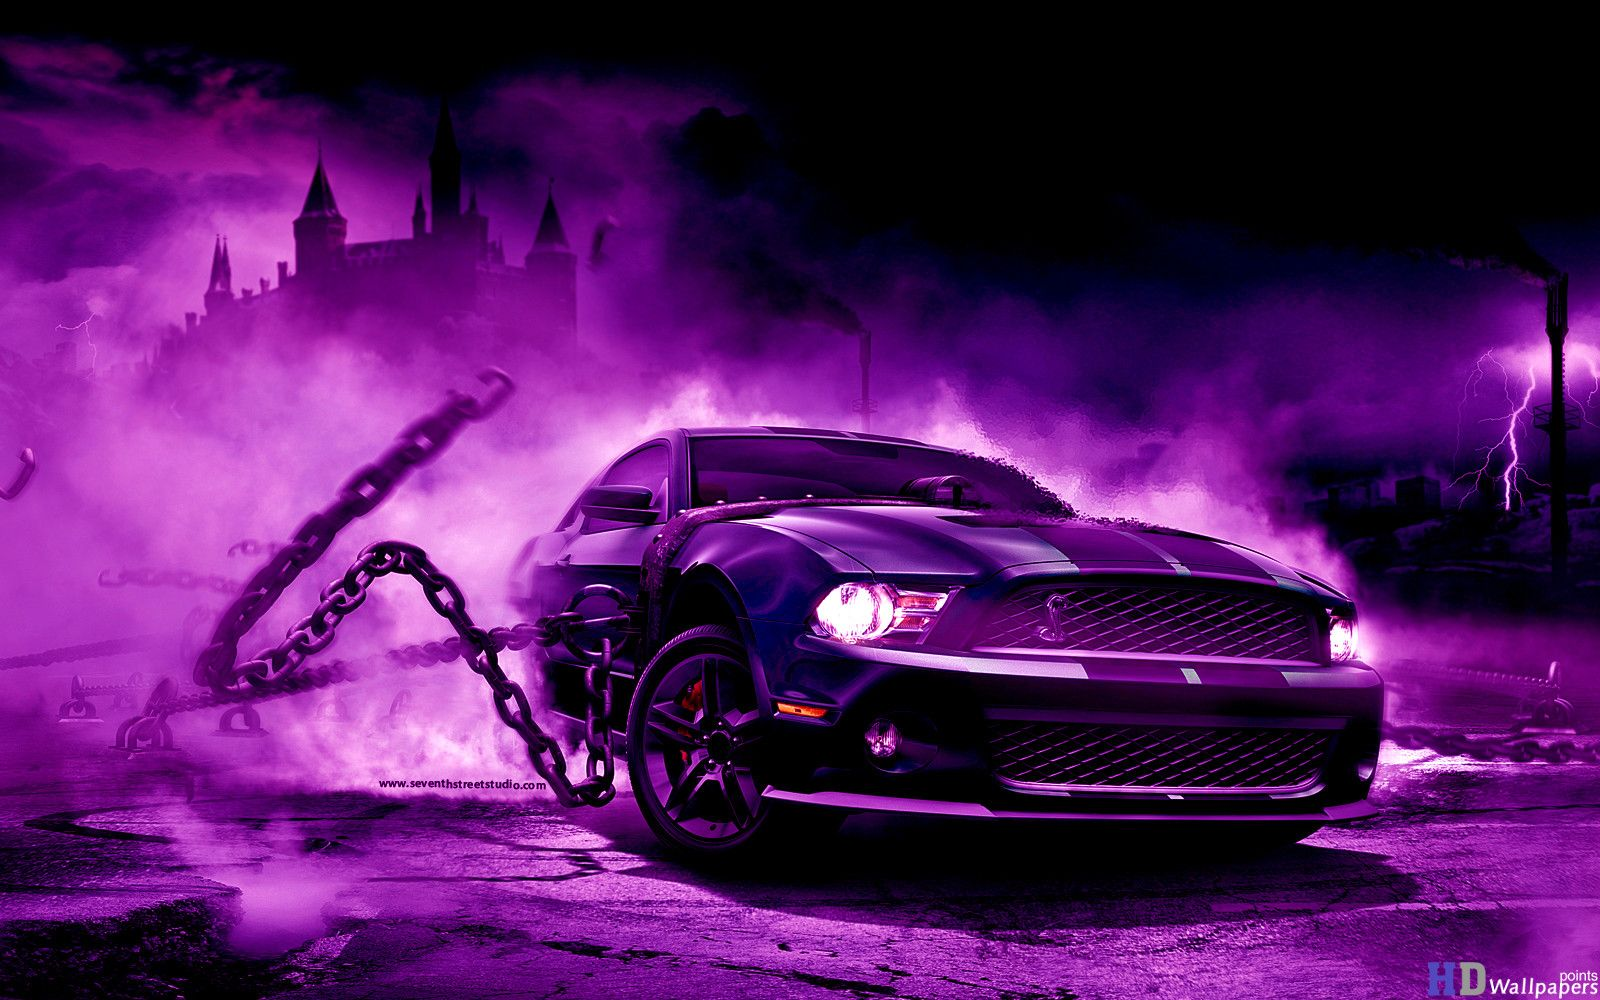 Cool Car 3d Wallpapers HD Background Desktop #14500 Wallpaper ... | vikas in 2019 | Car ...